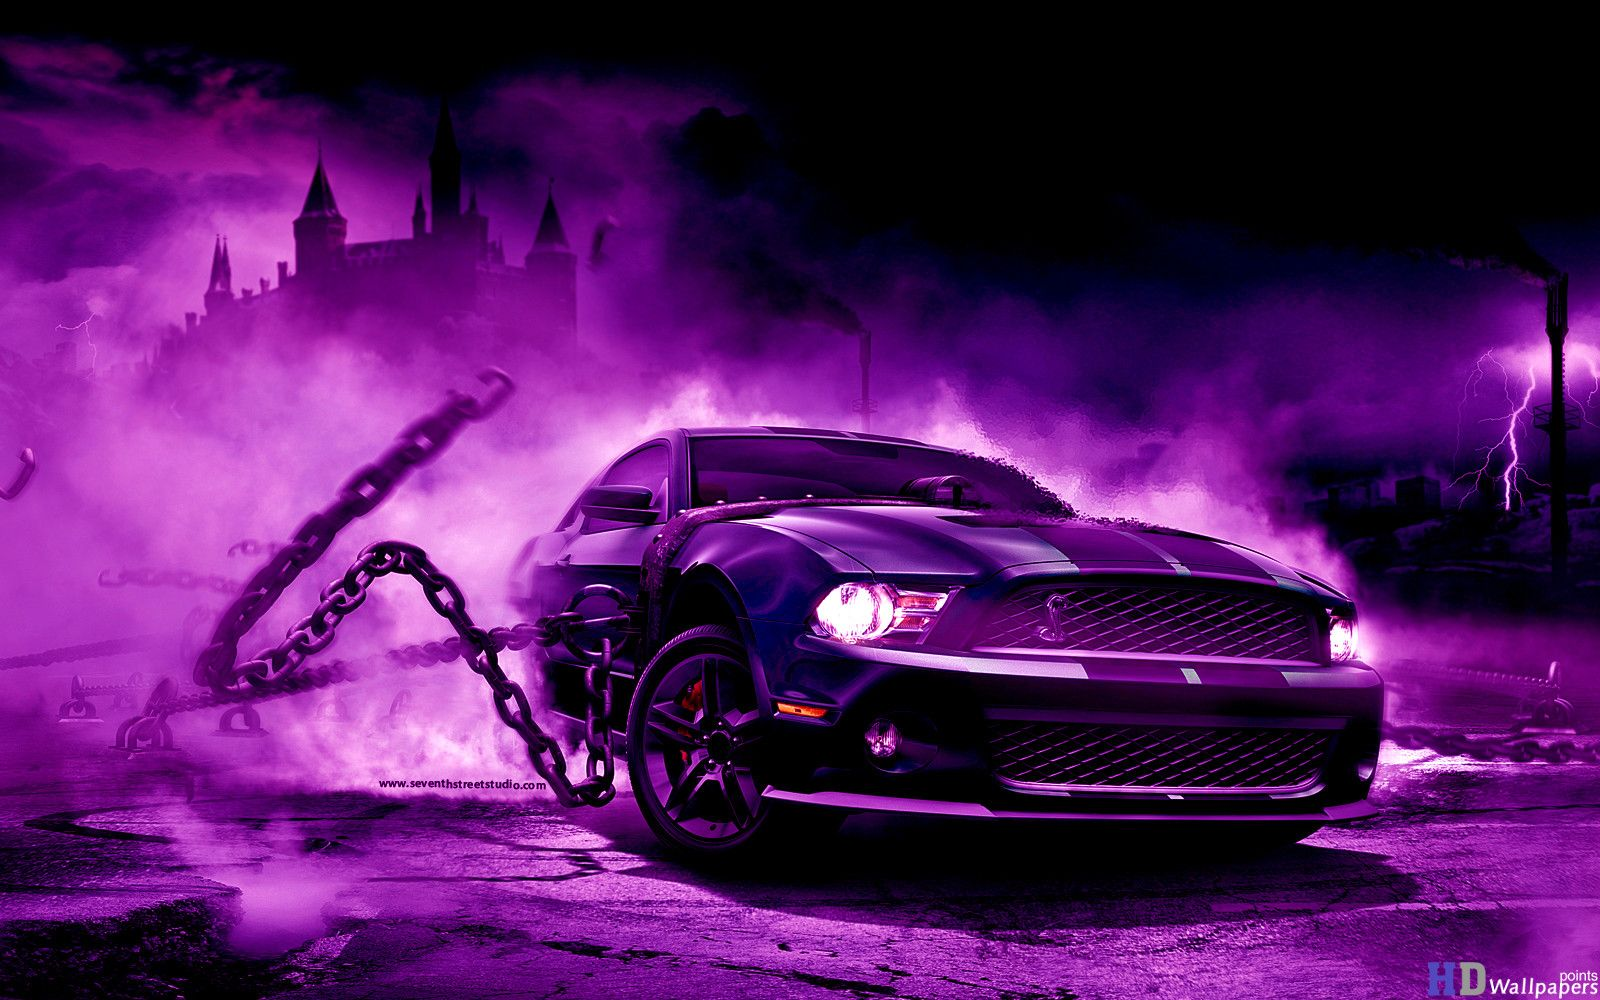 Cool Car 3d Wallpapers HD Background Desktop #14500 Wallpaper ... | vikas in 2019 | Car ...